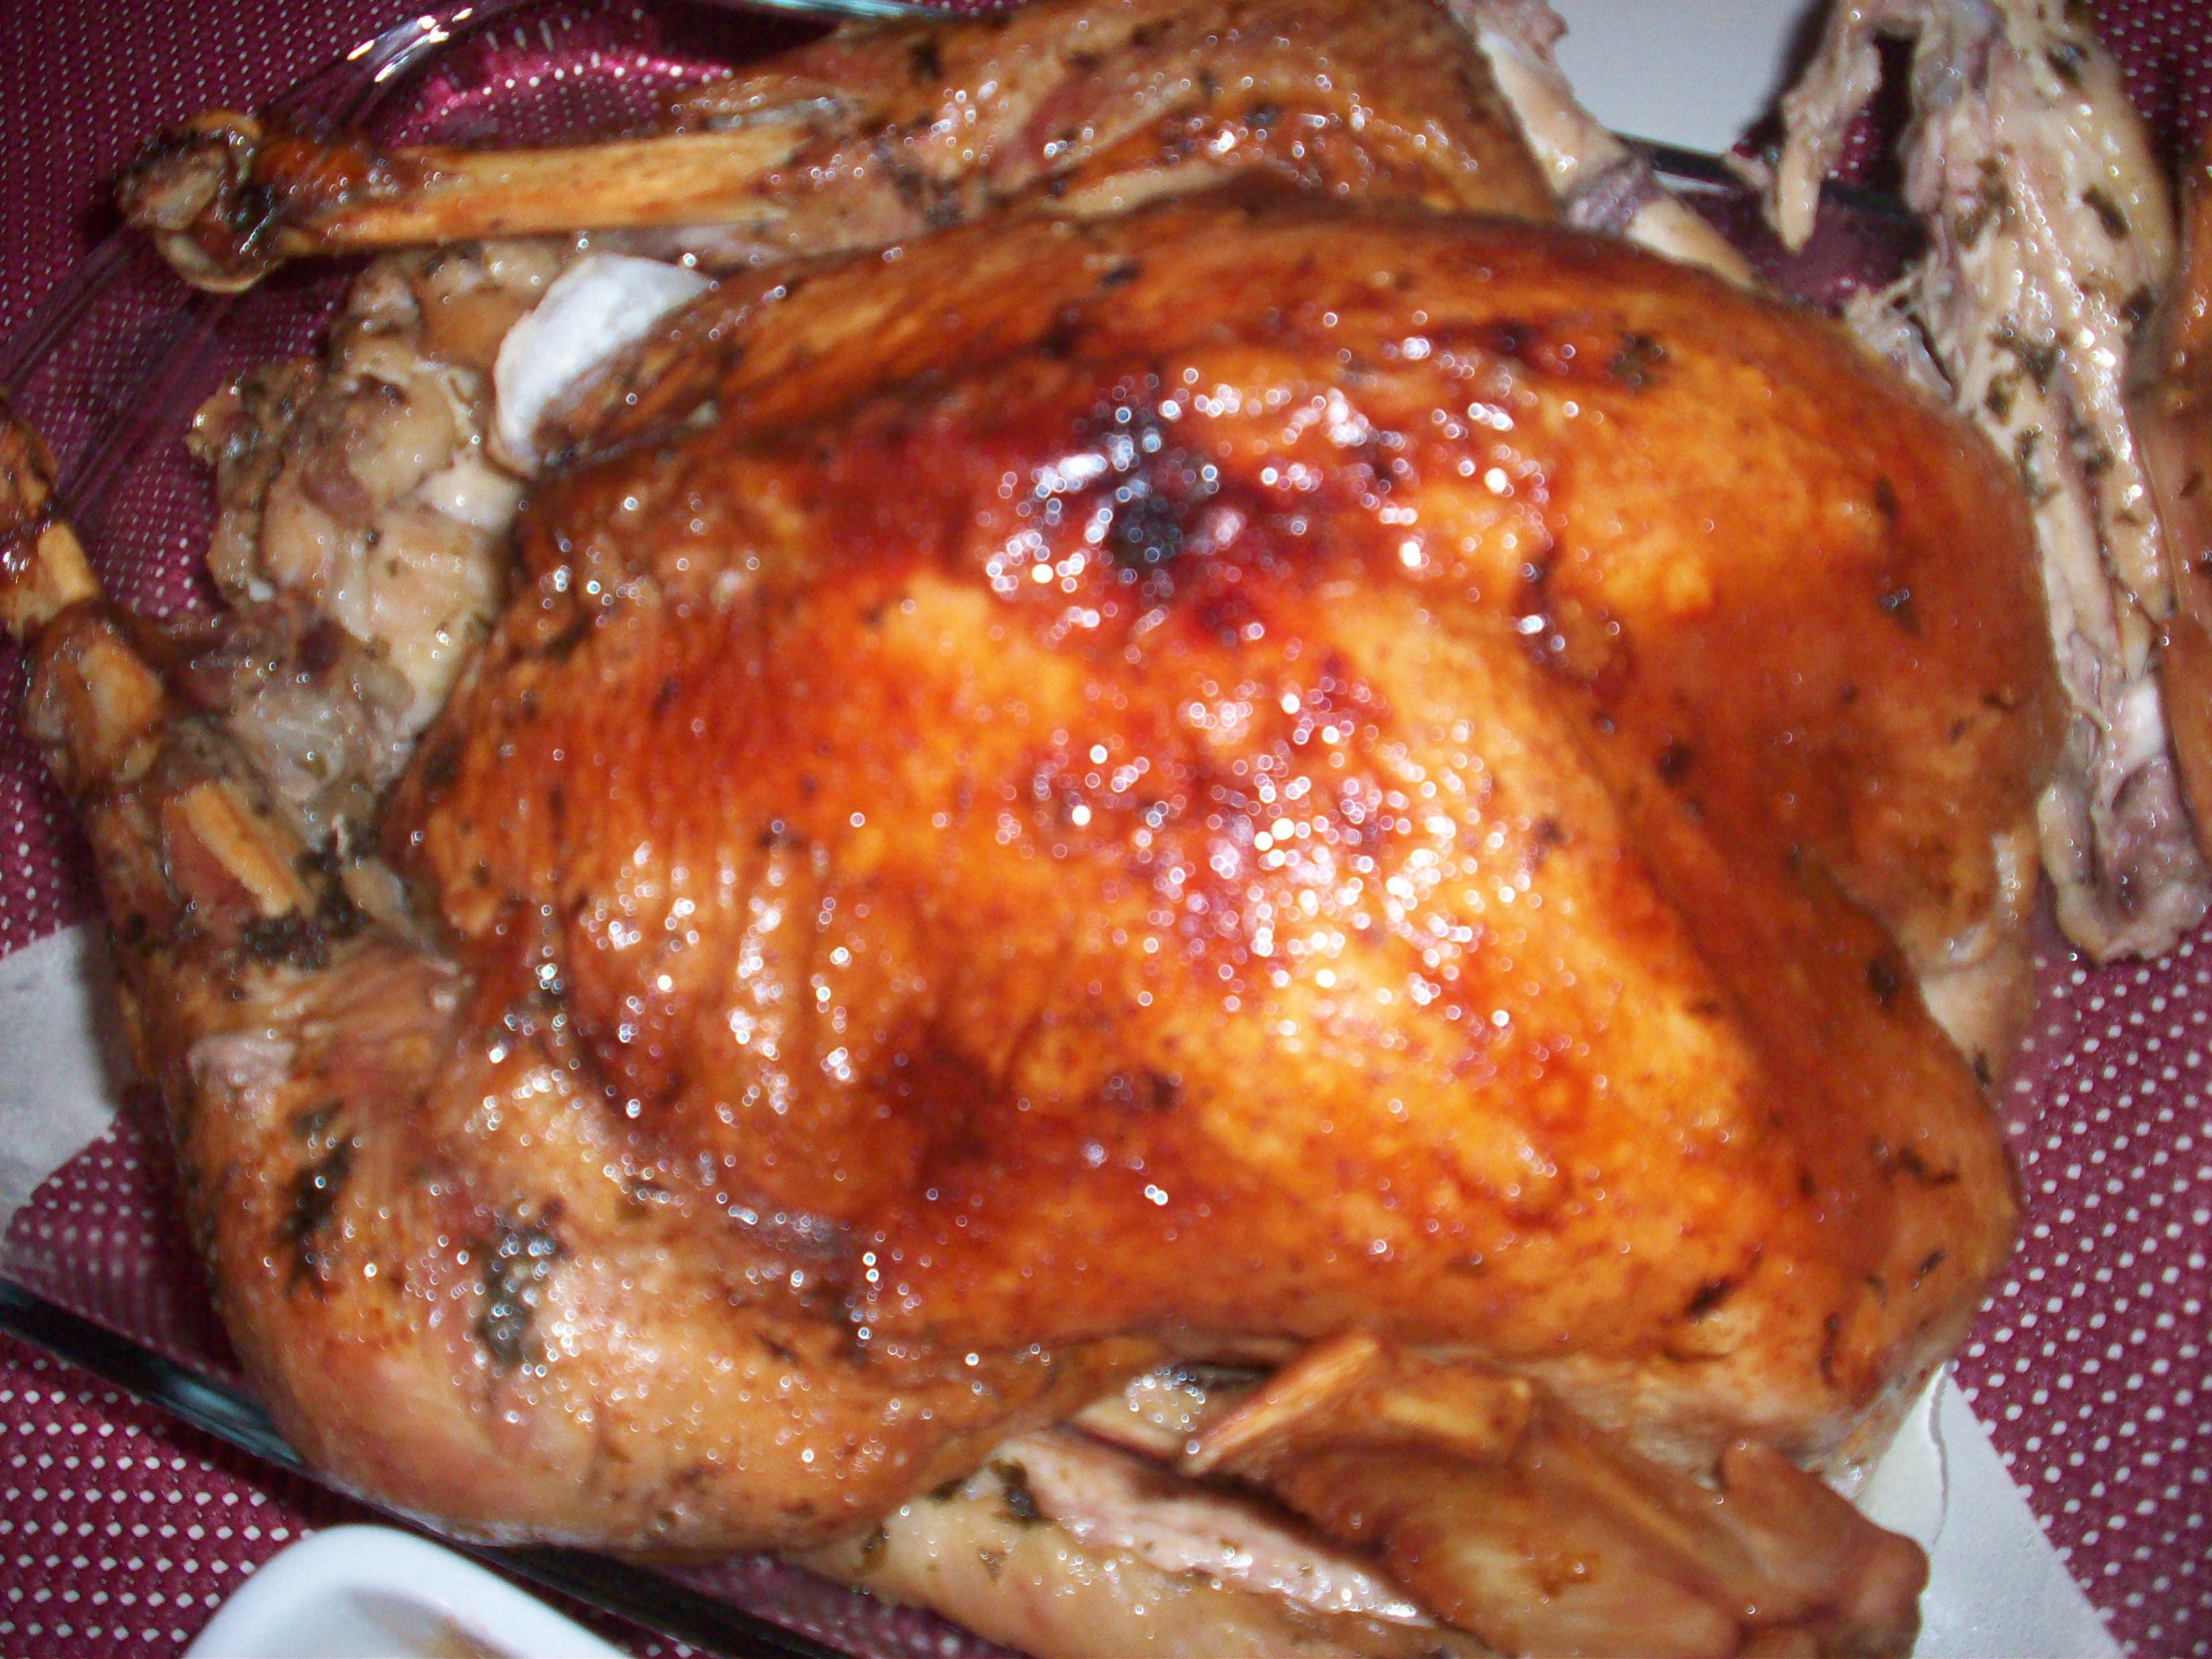 http://foodloader.net/cutie_2010-10-10_Roasted_Turkey.jpg